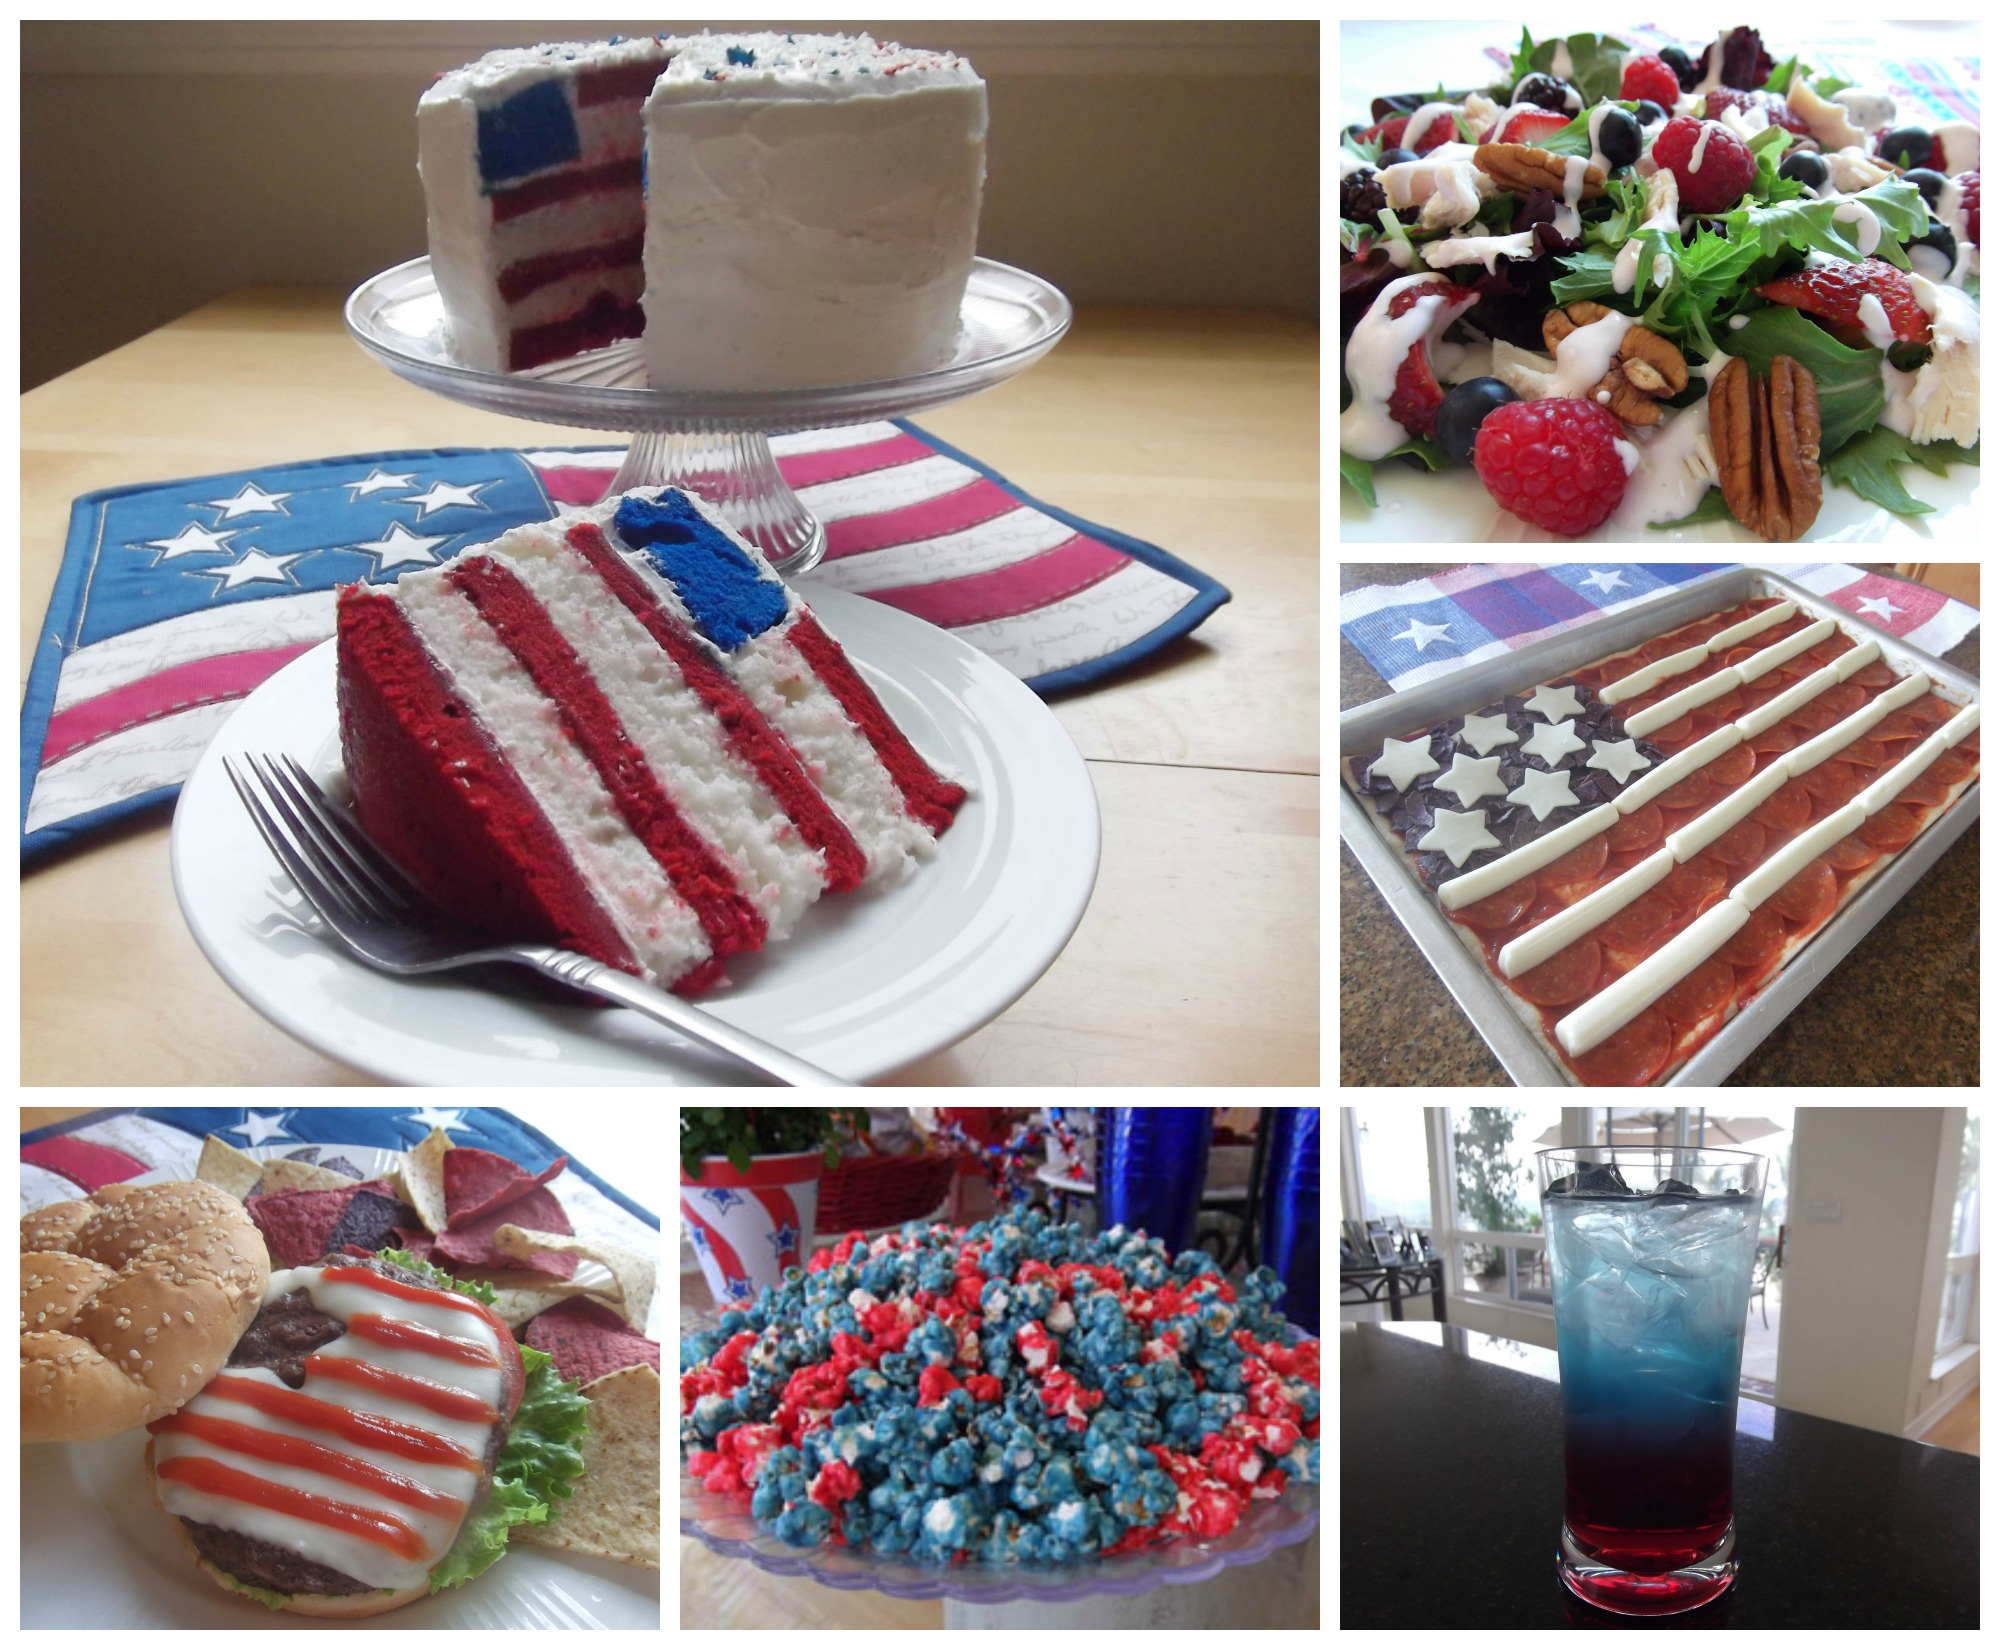 Recipes for July 4th